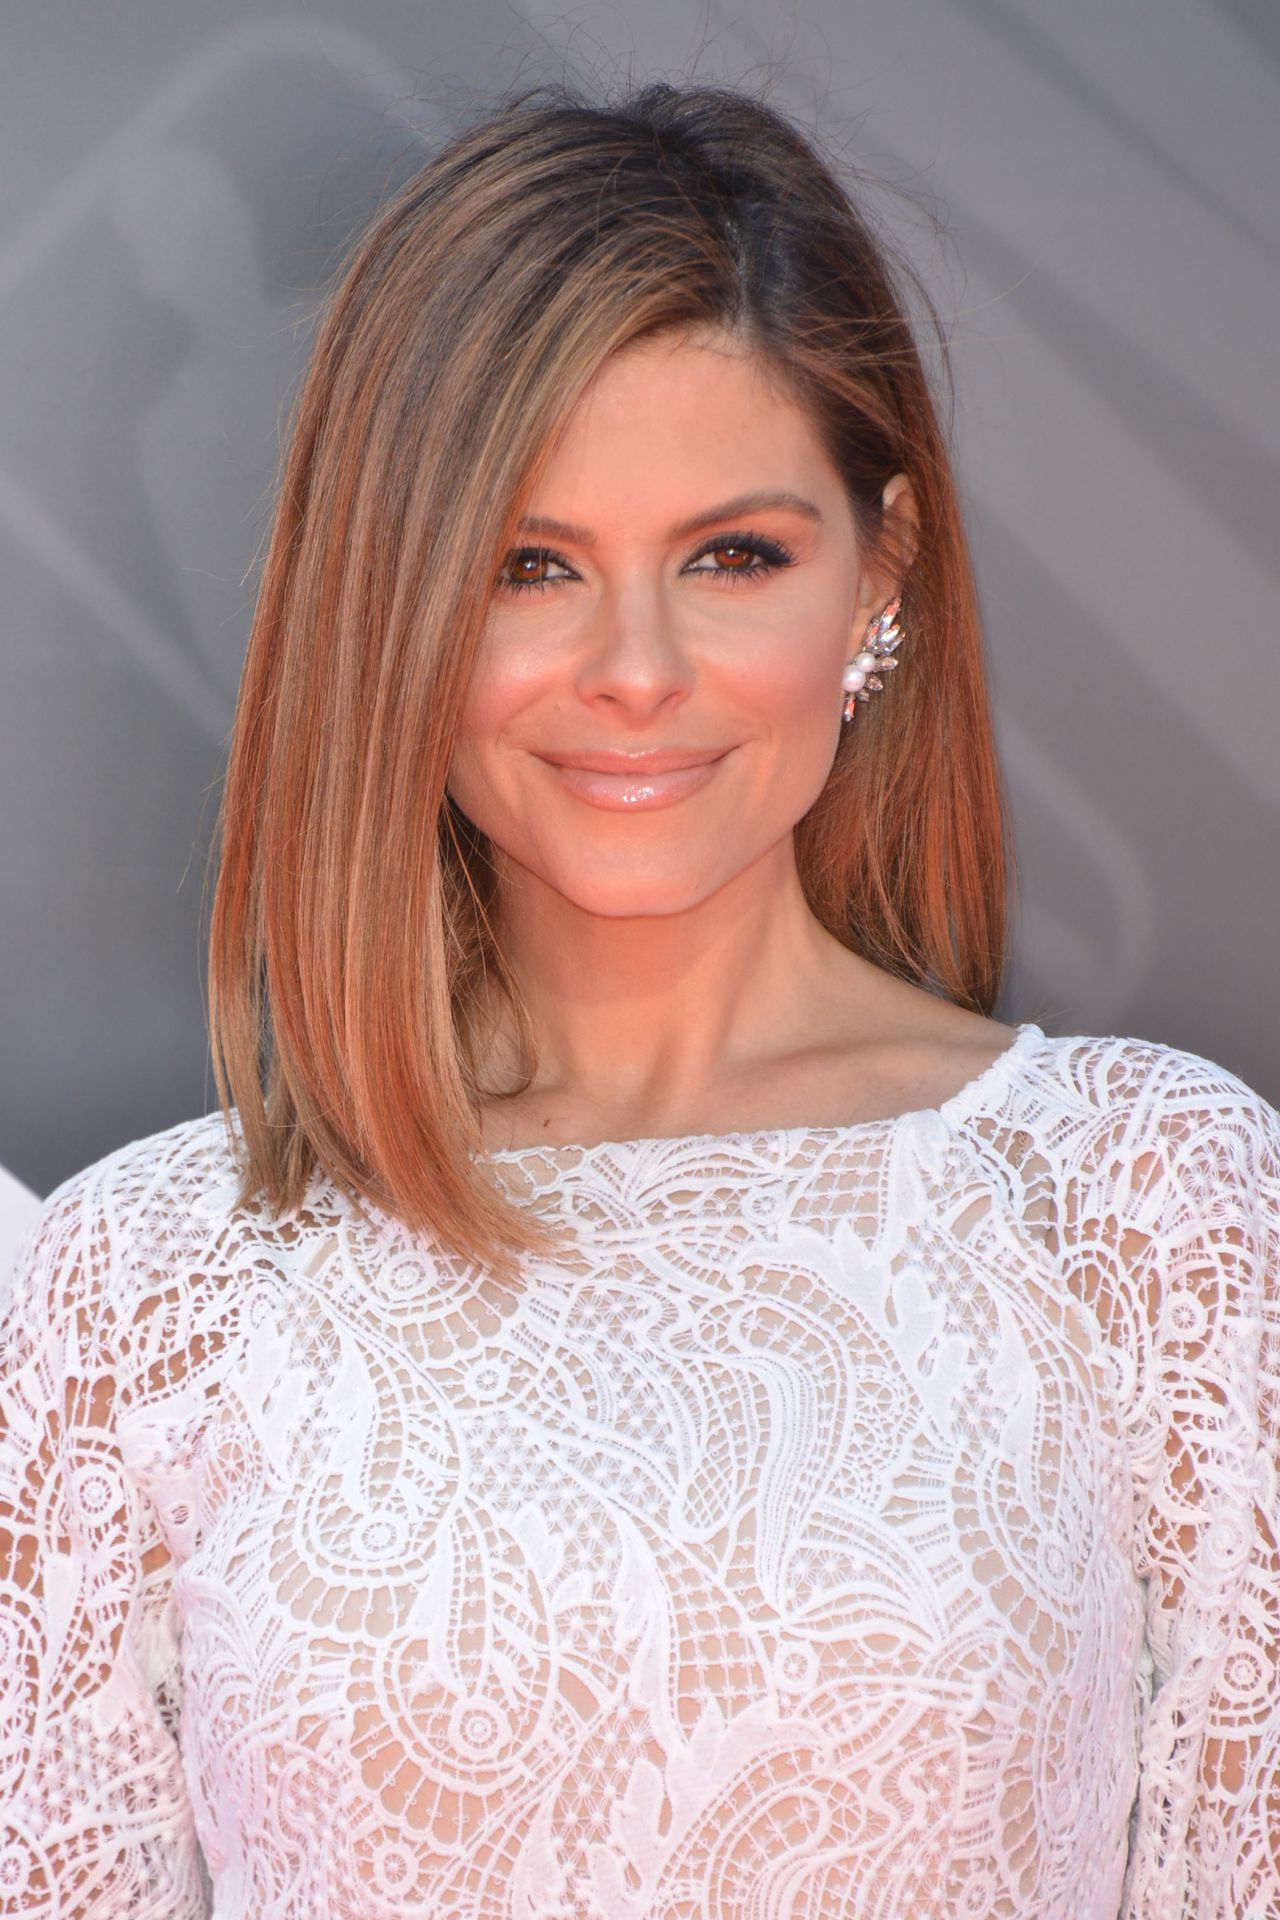 Maria Menounos 2018 Nba Awards In Santa Monica